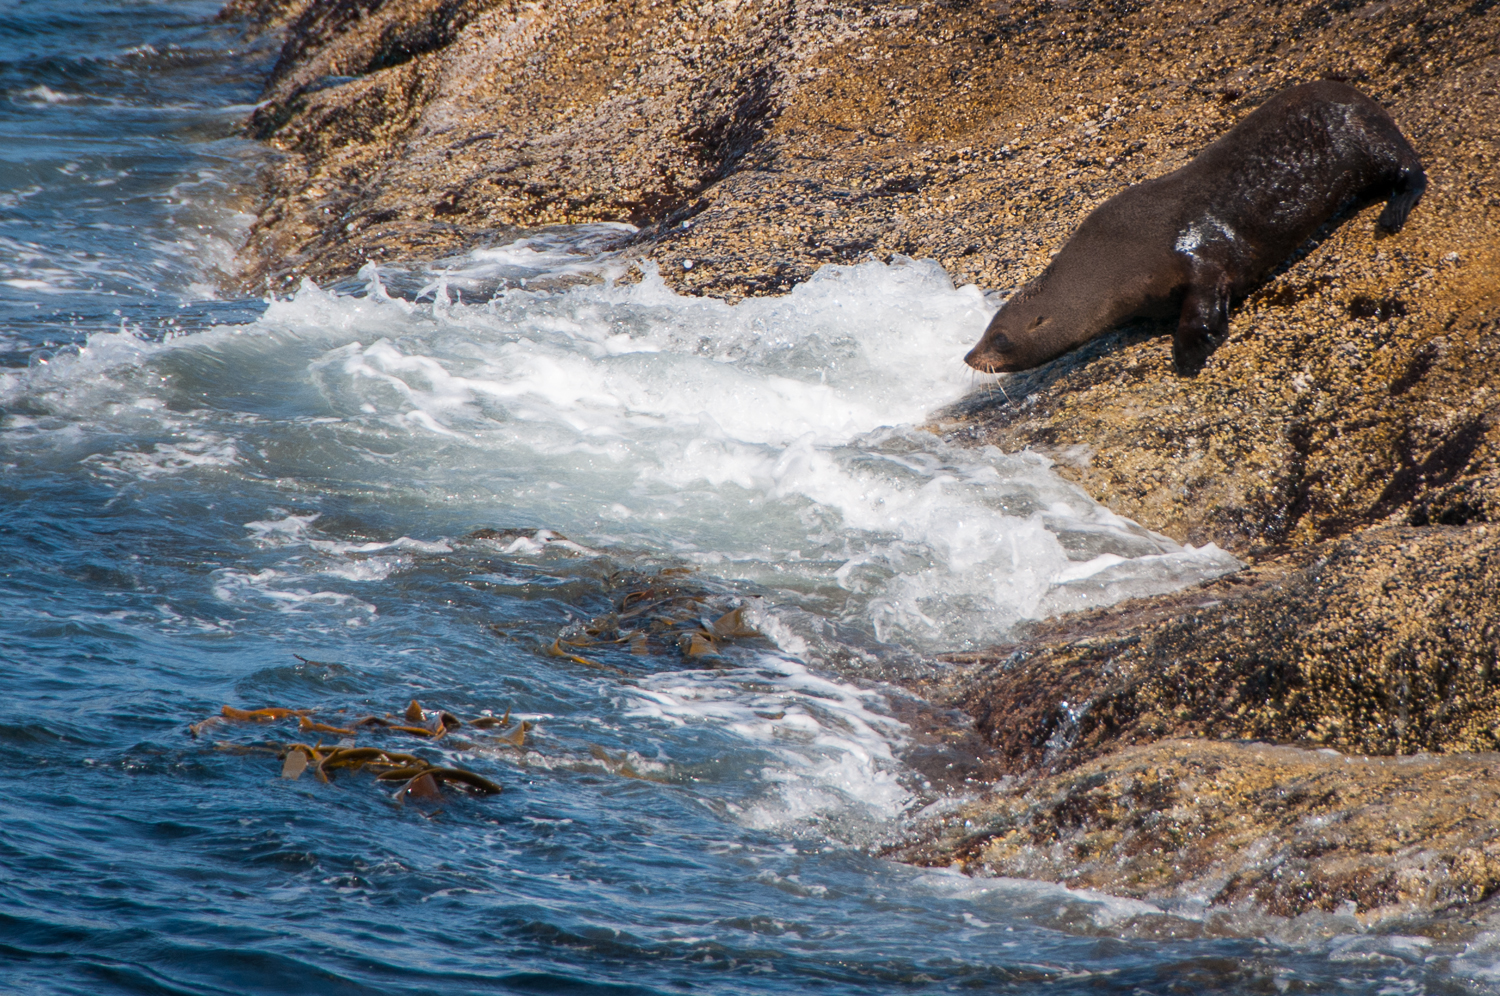 Fur Seal dive